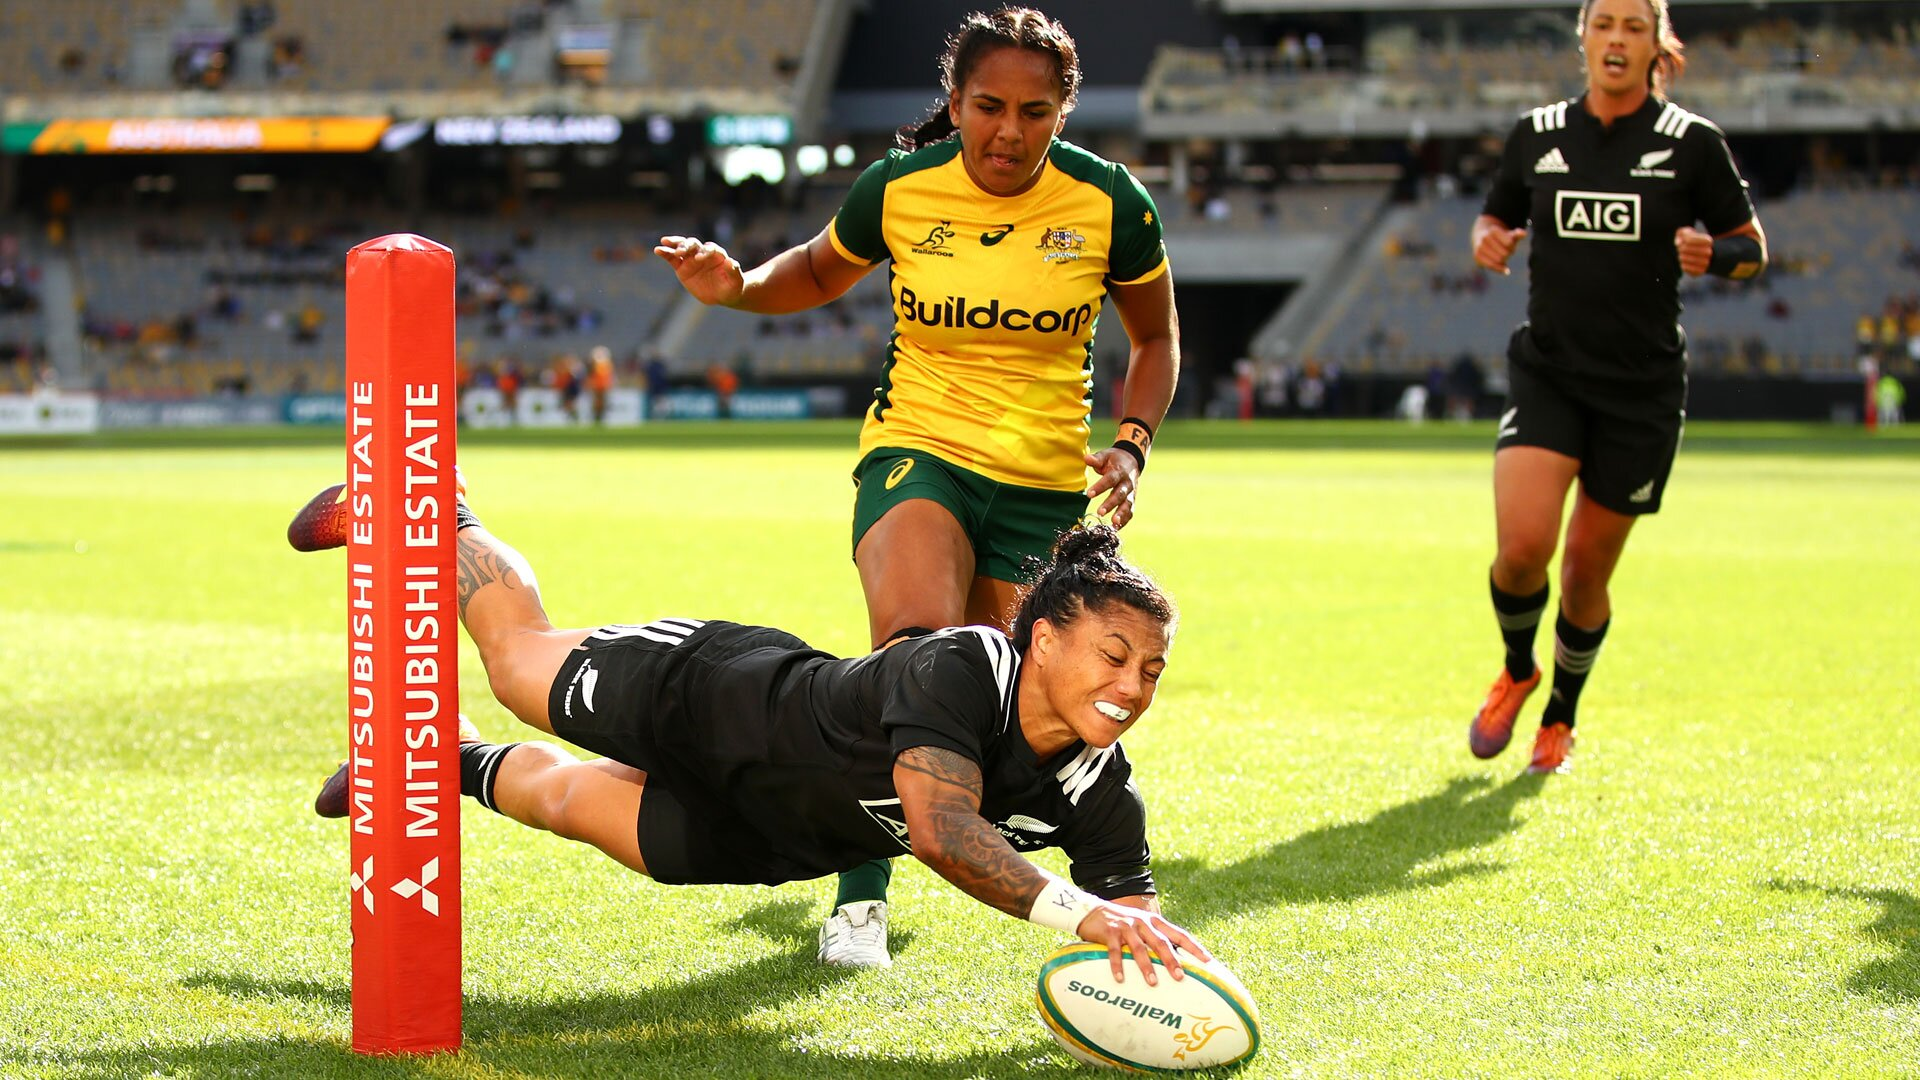 'A complex and emotive process': World Rugby backs guidelines to exclude transgender women from elite competitions